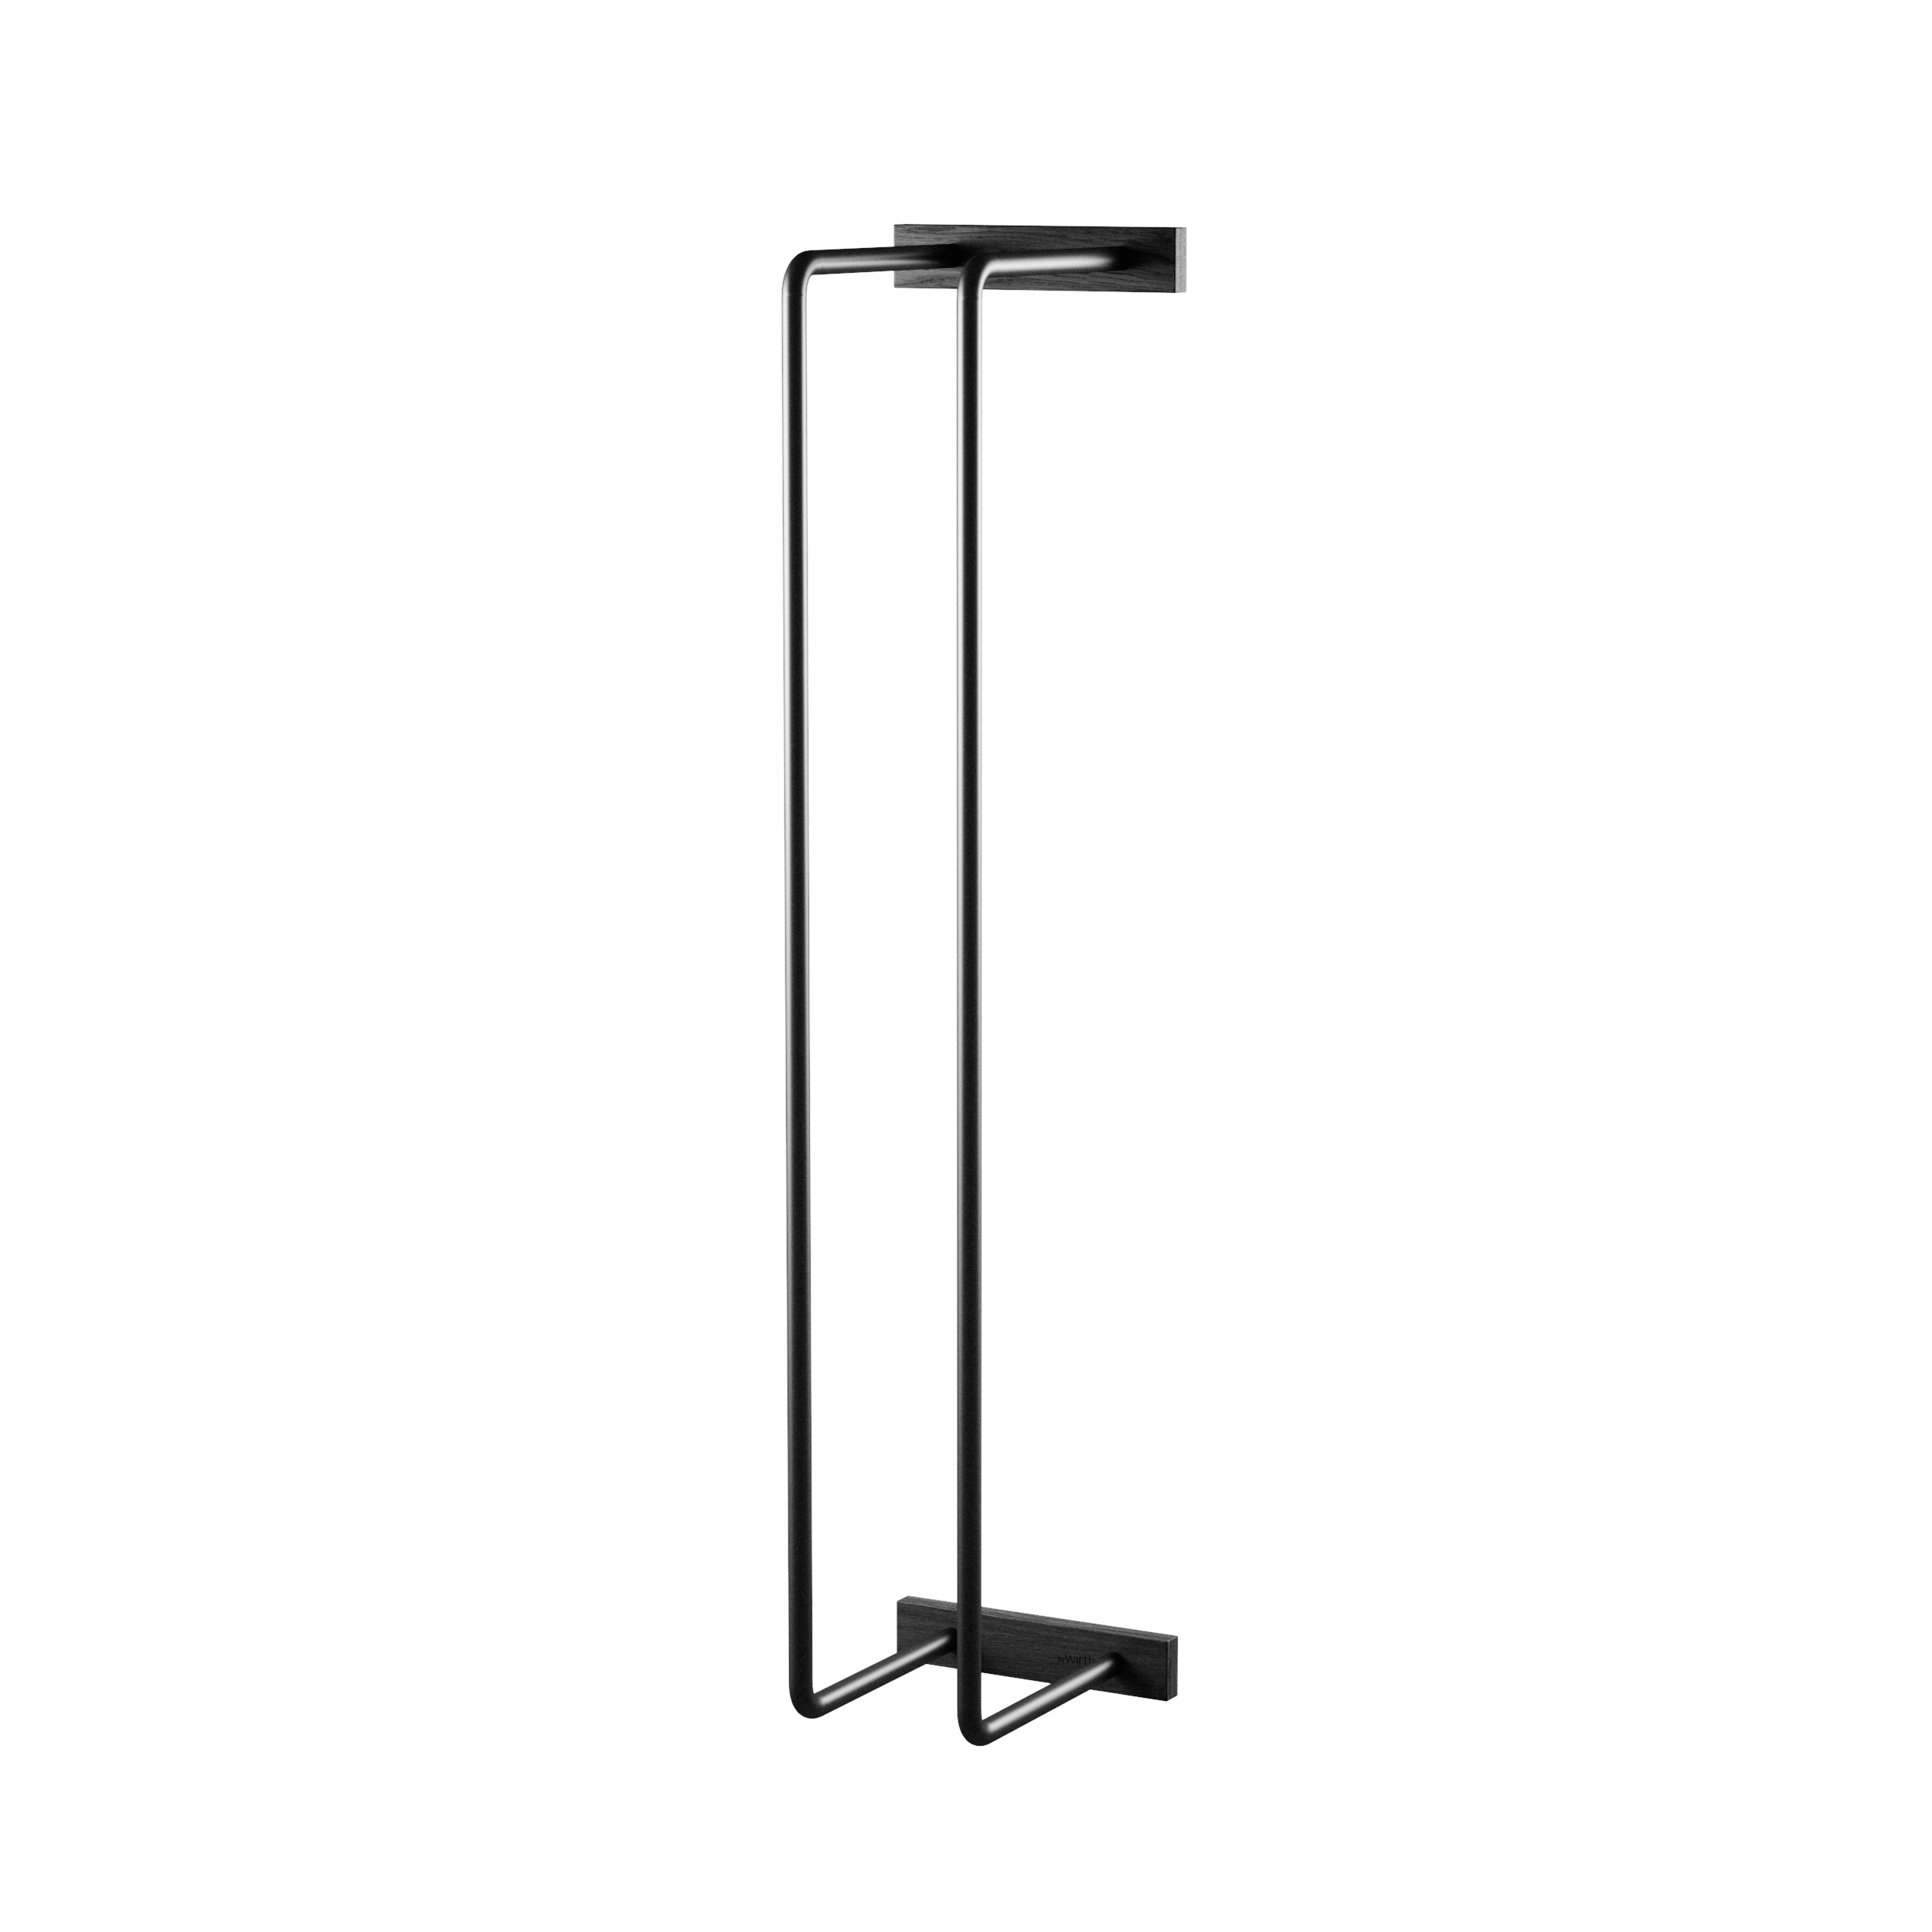 Bathroom Rack Black